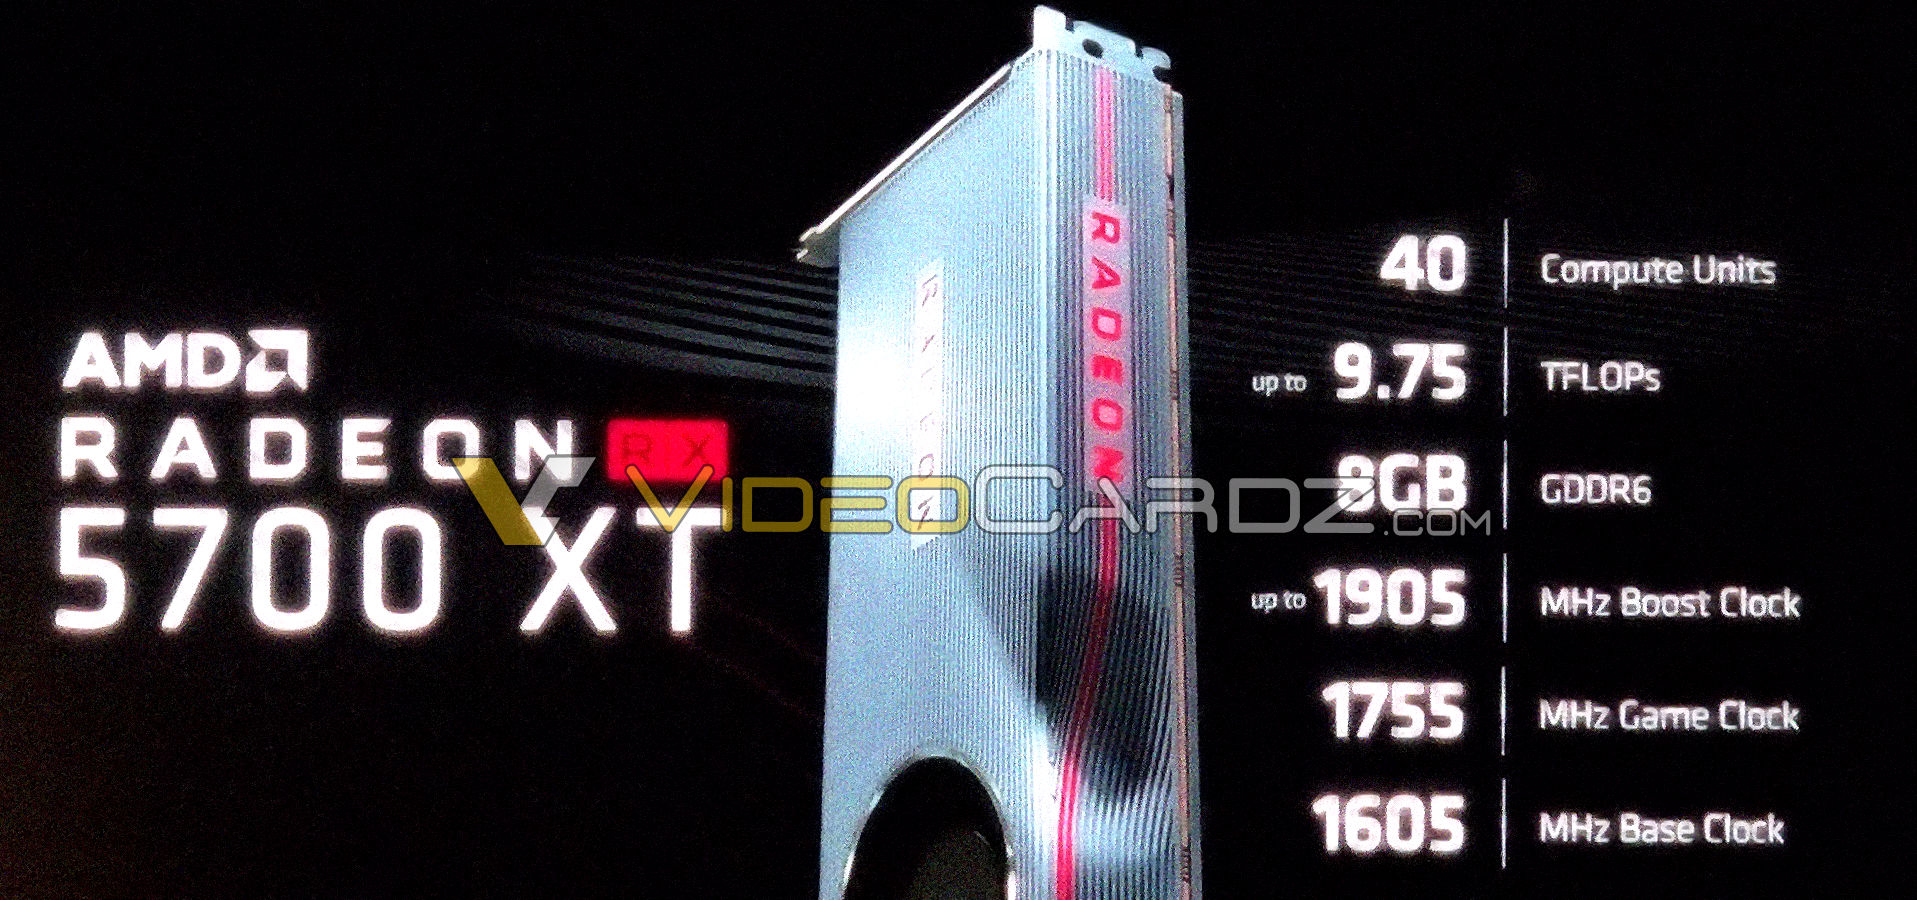 AMD Radeon RX 5700 XT picture and specs leaked | VideoCardz com